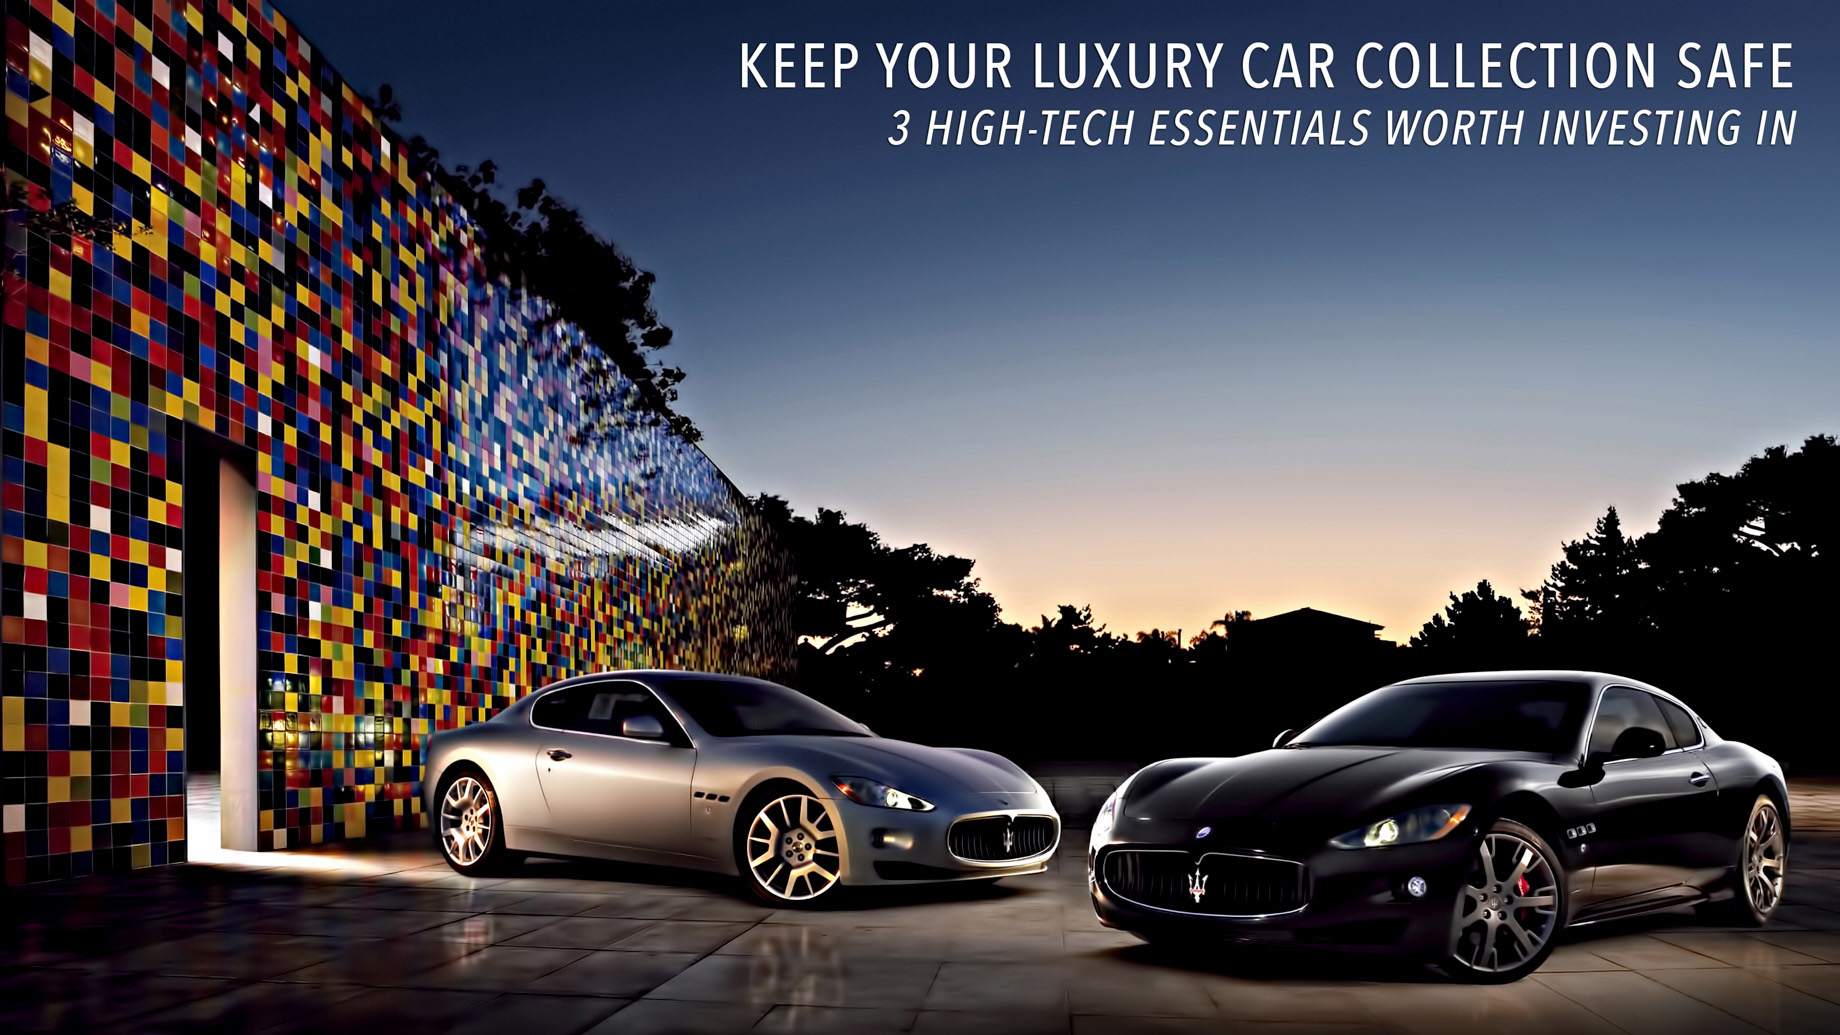 Keep Your Luxury Car Collection Safe - 3 High-Tech Essentials Worth Investing In